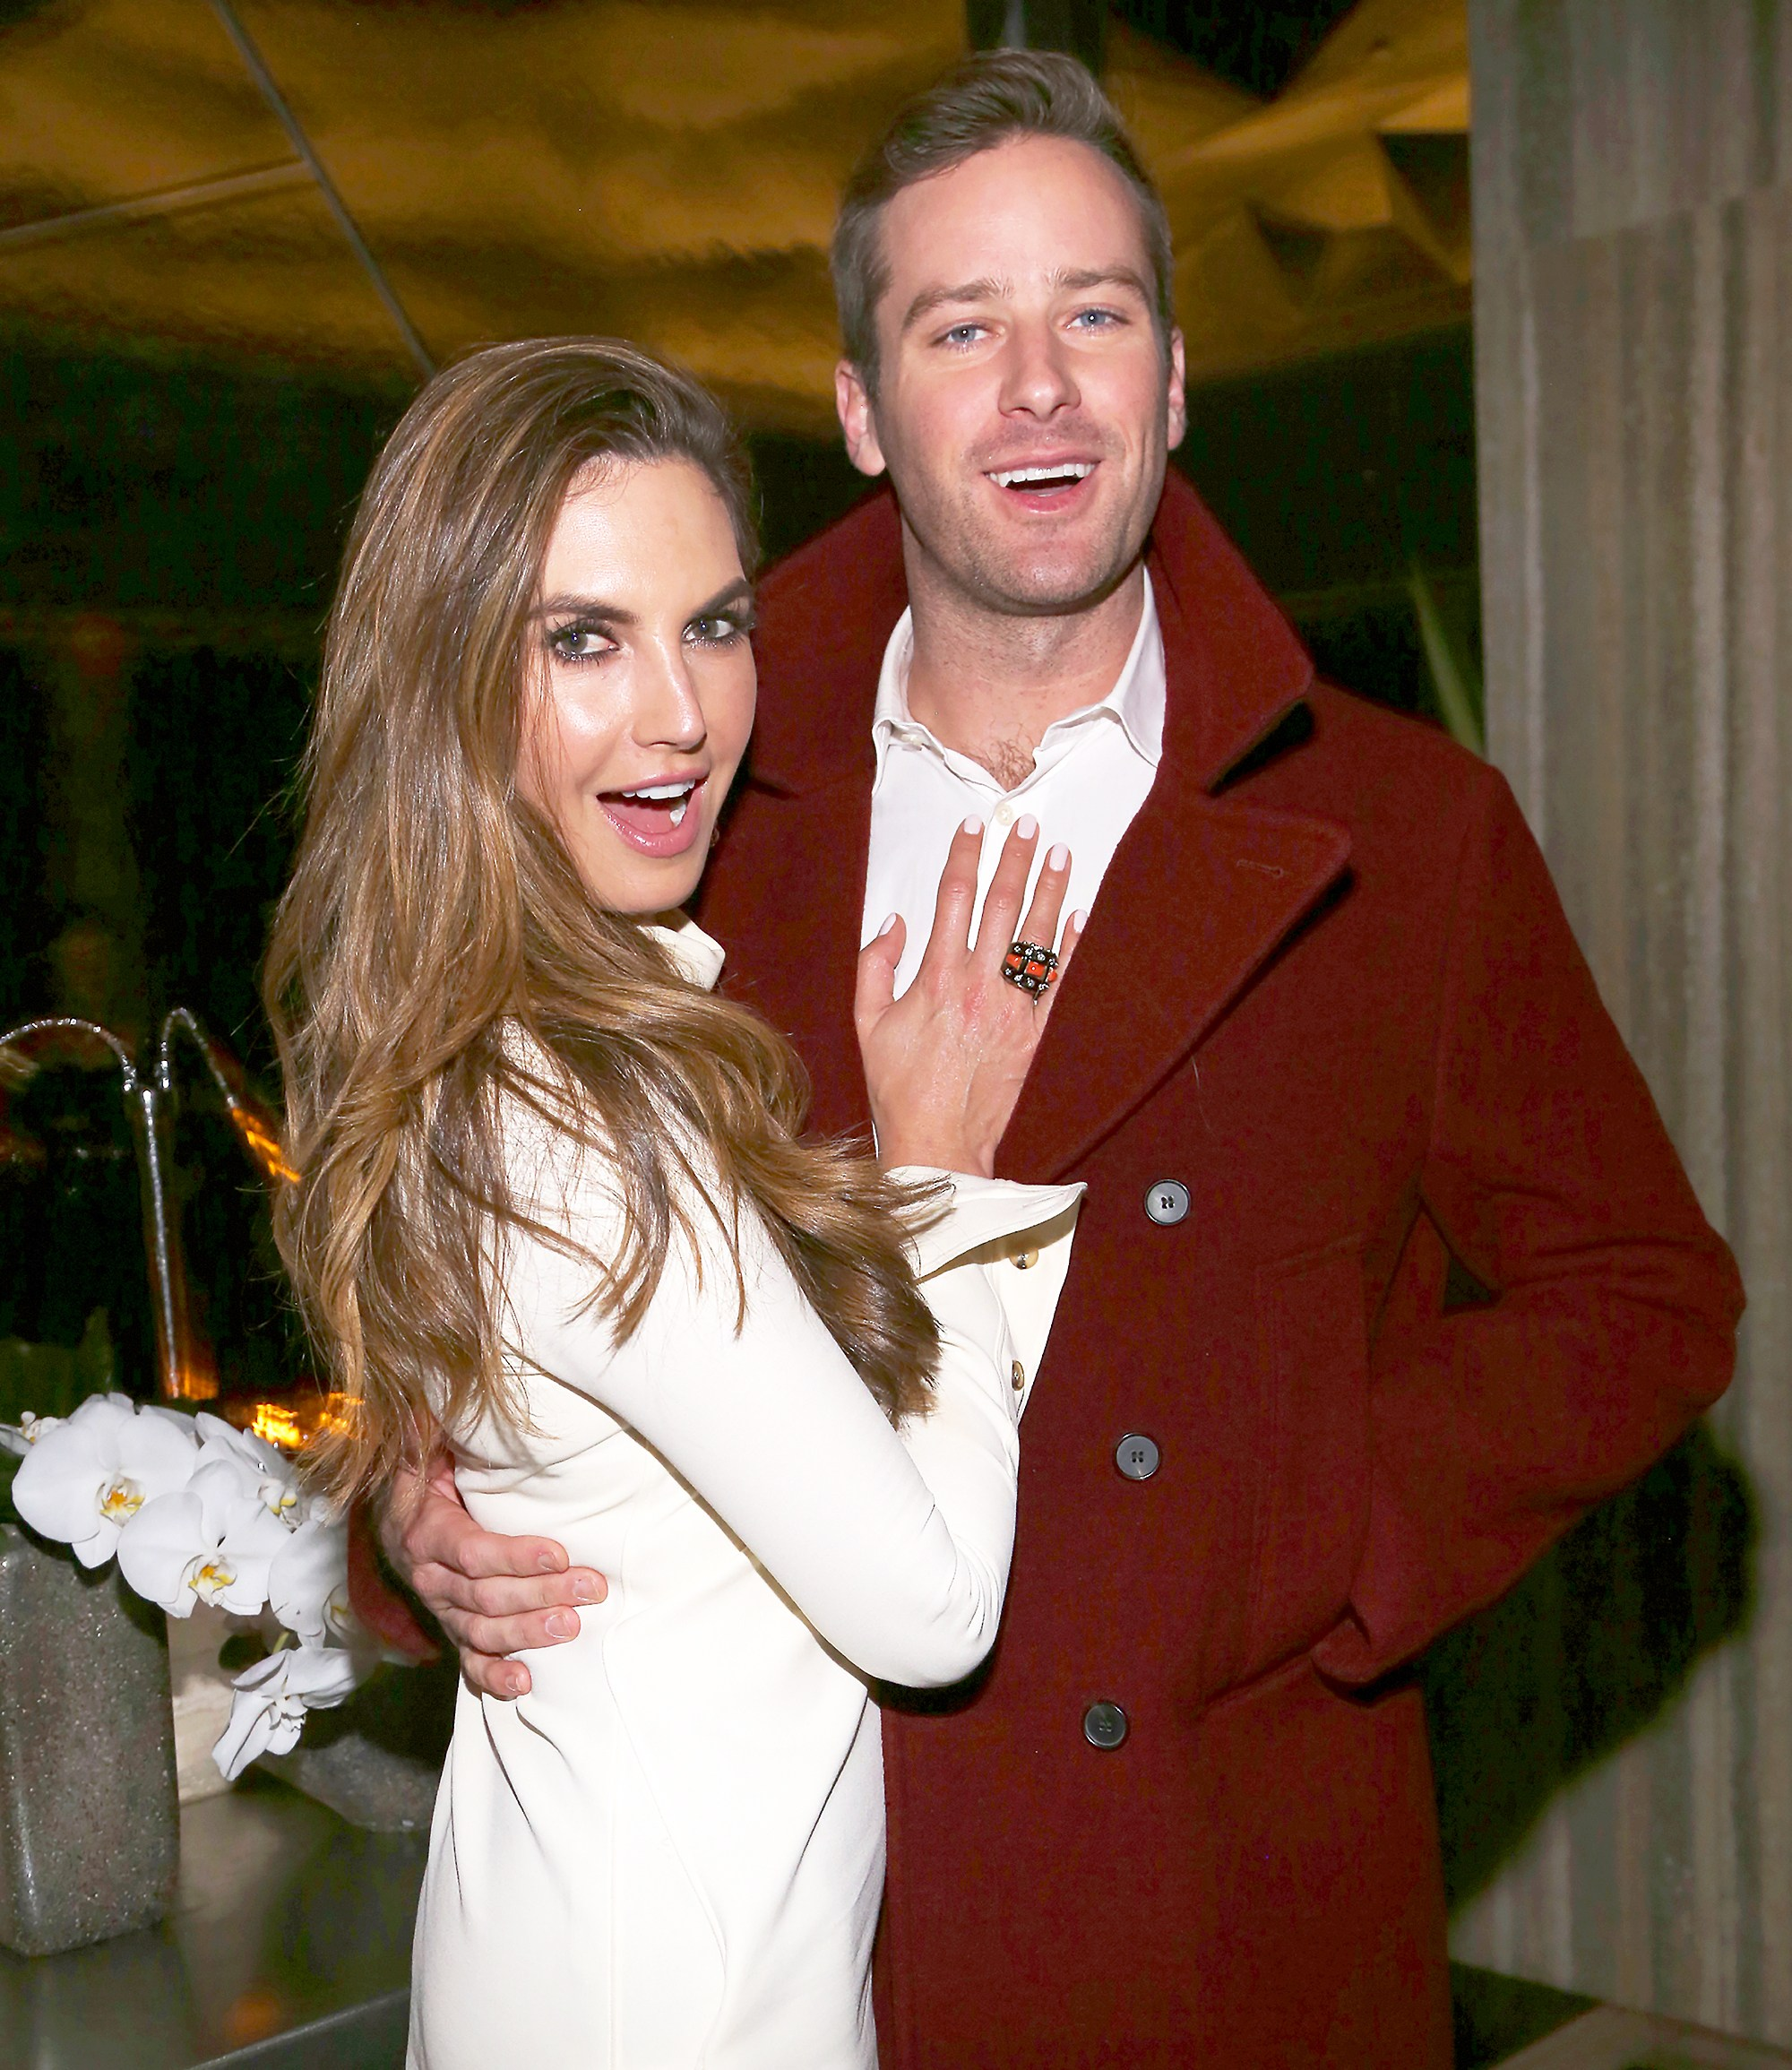 Elizabeth Chambers and Armie Hammer attends Calvin Klein and The Cinema Society host a screening of 'Call Me By Your Name' on November 16, 2017 in New York City.